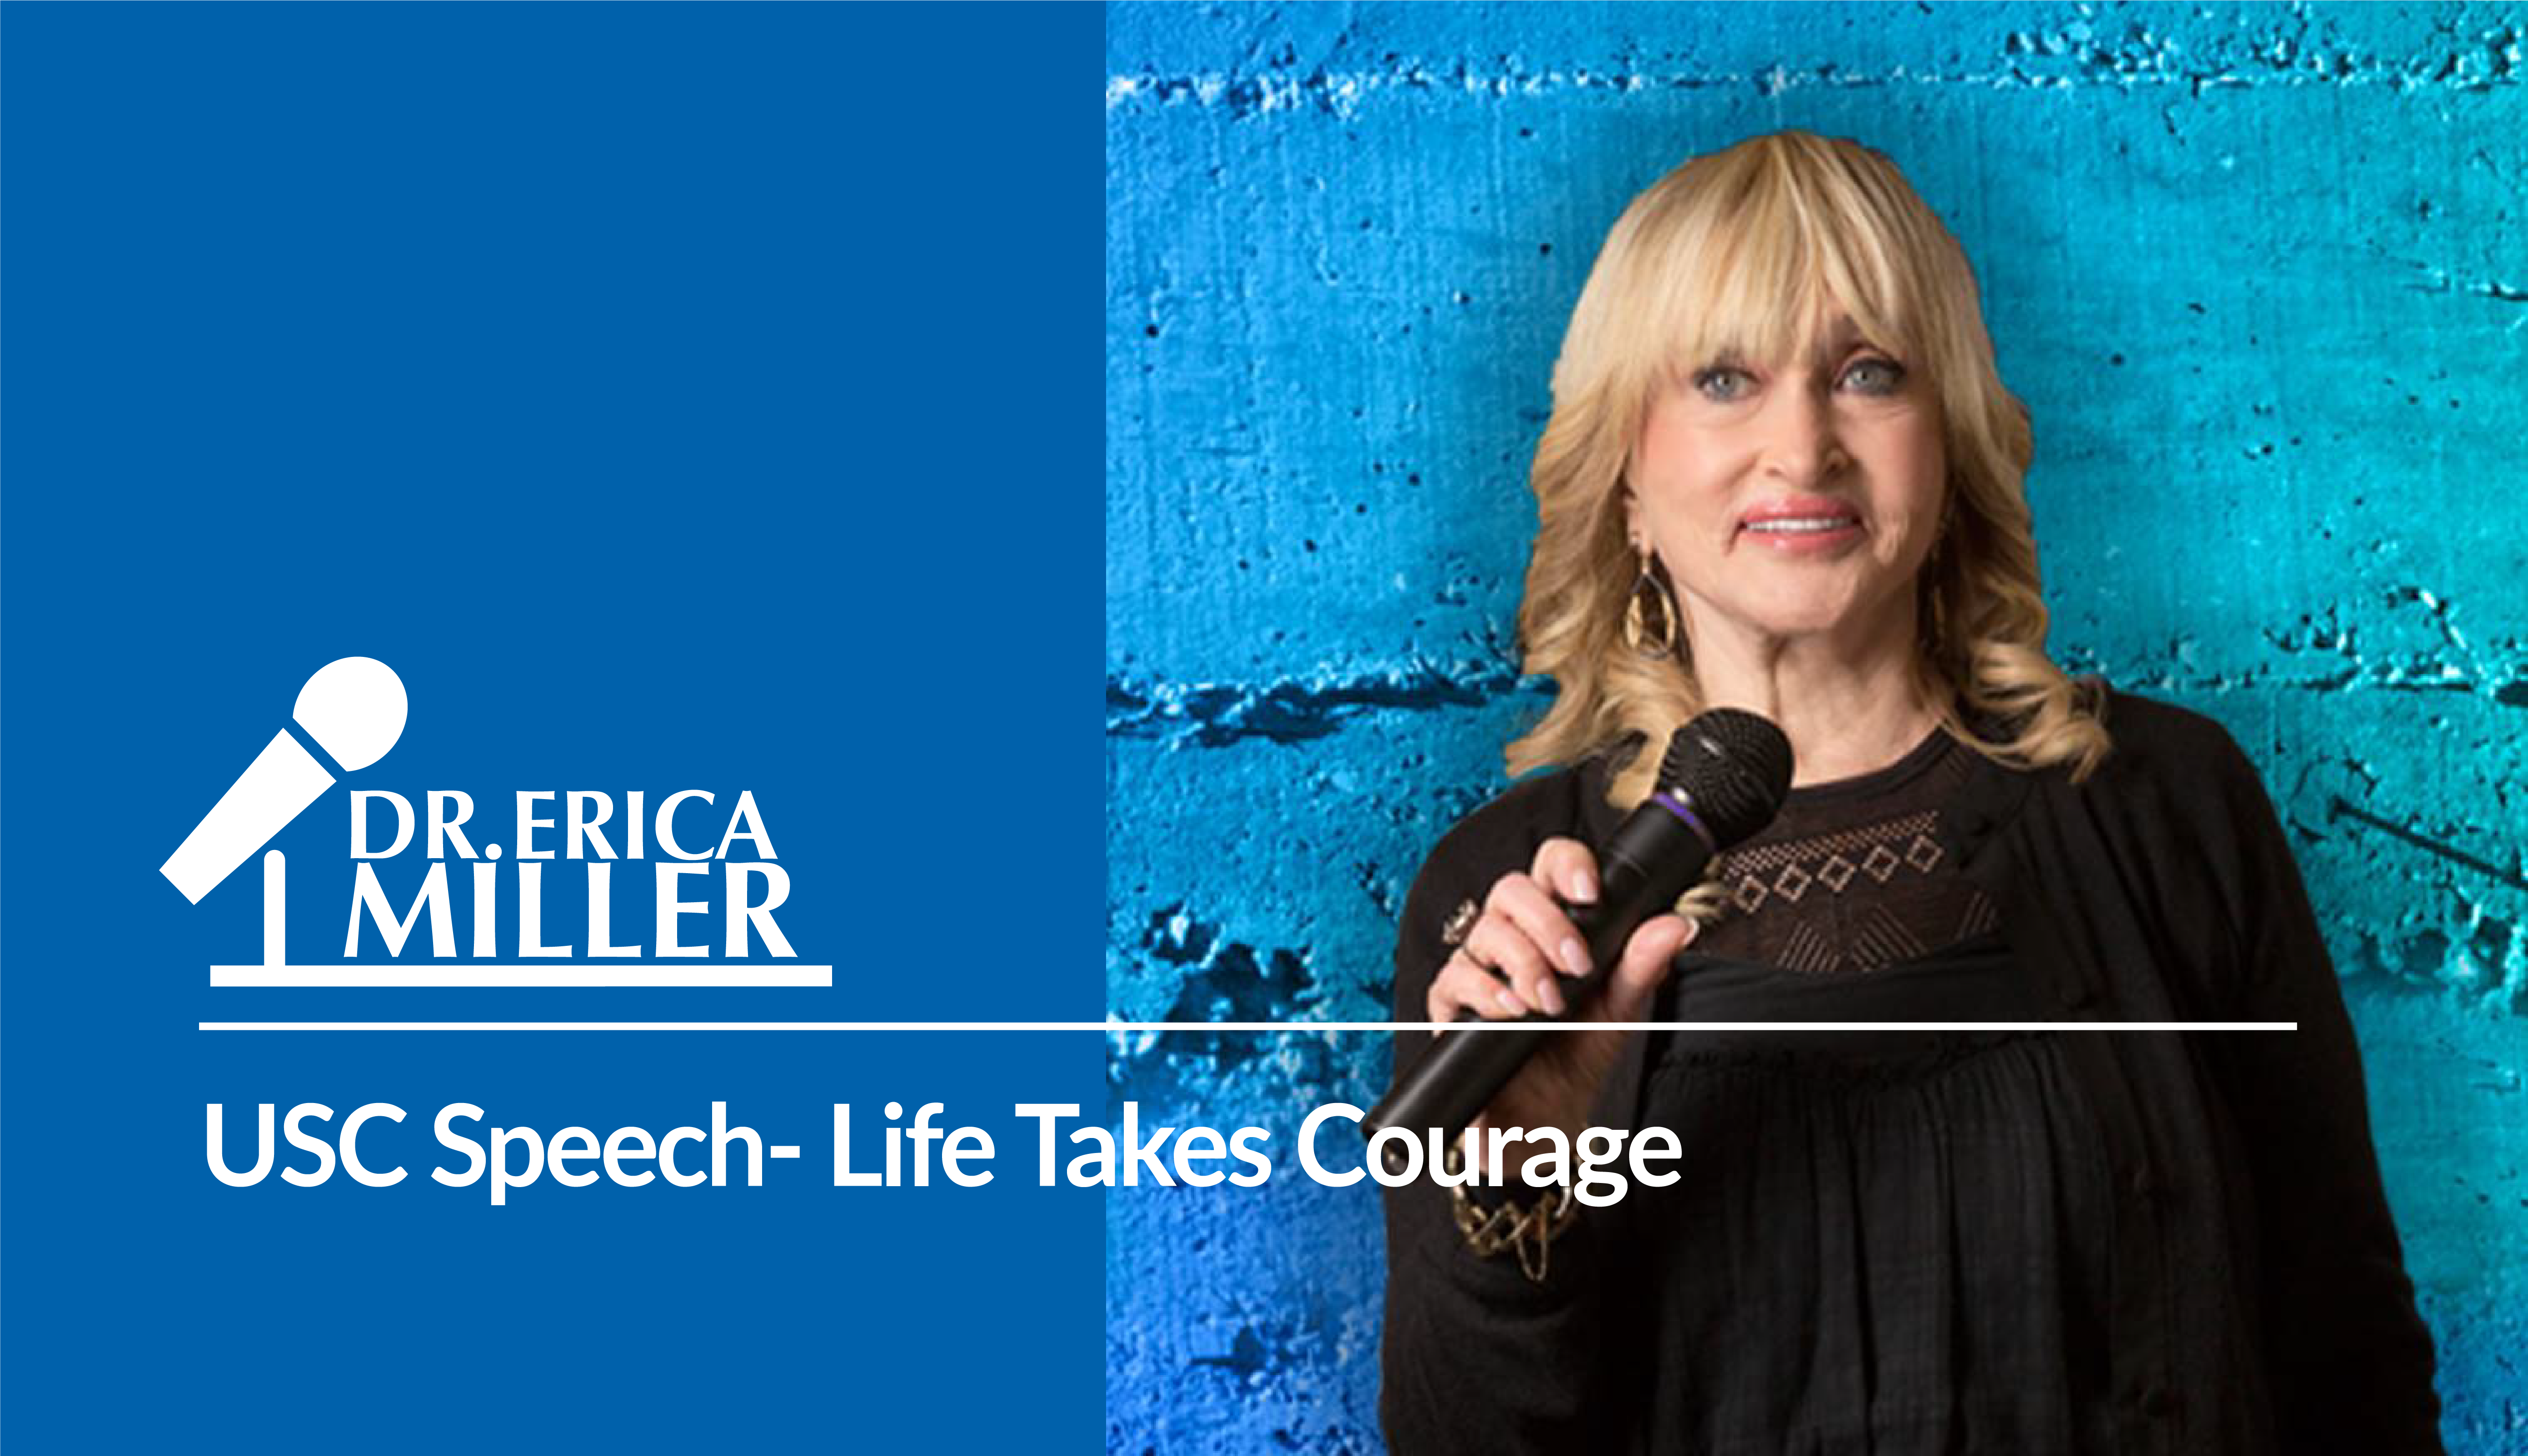 USC Speech- Life Takes Courage